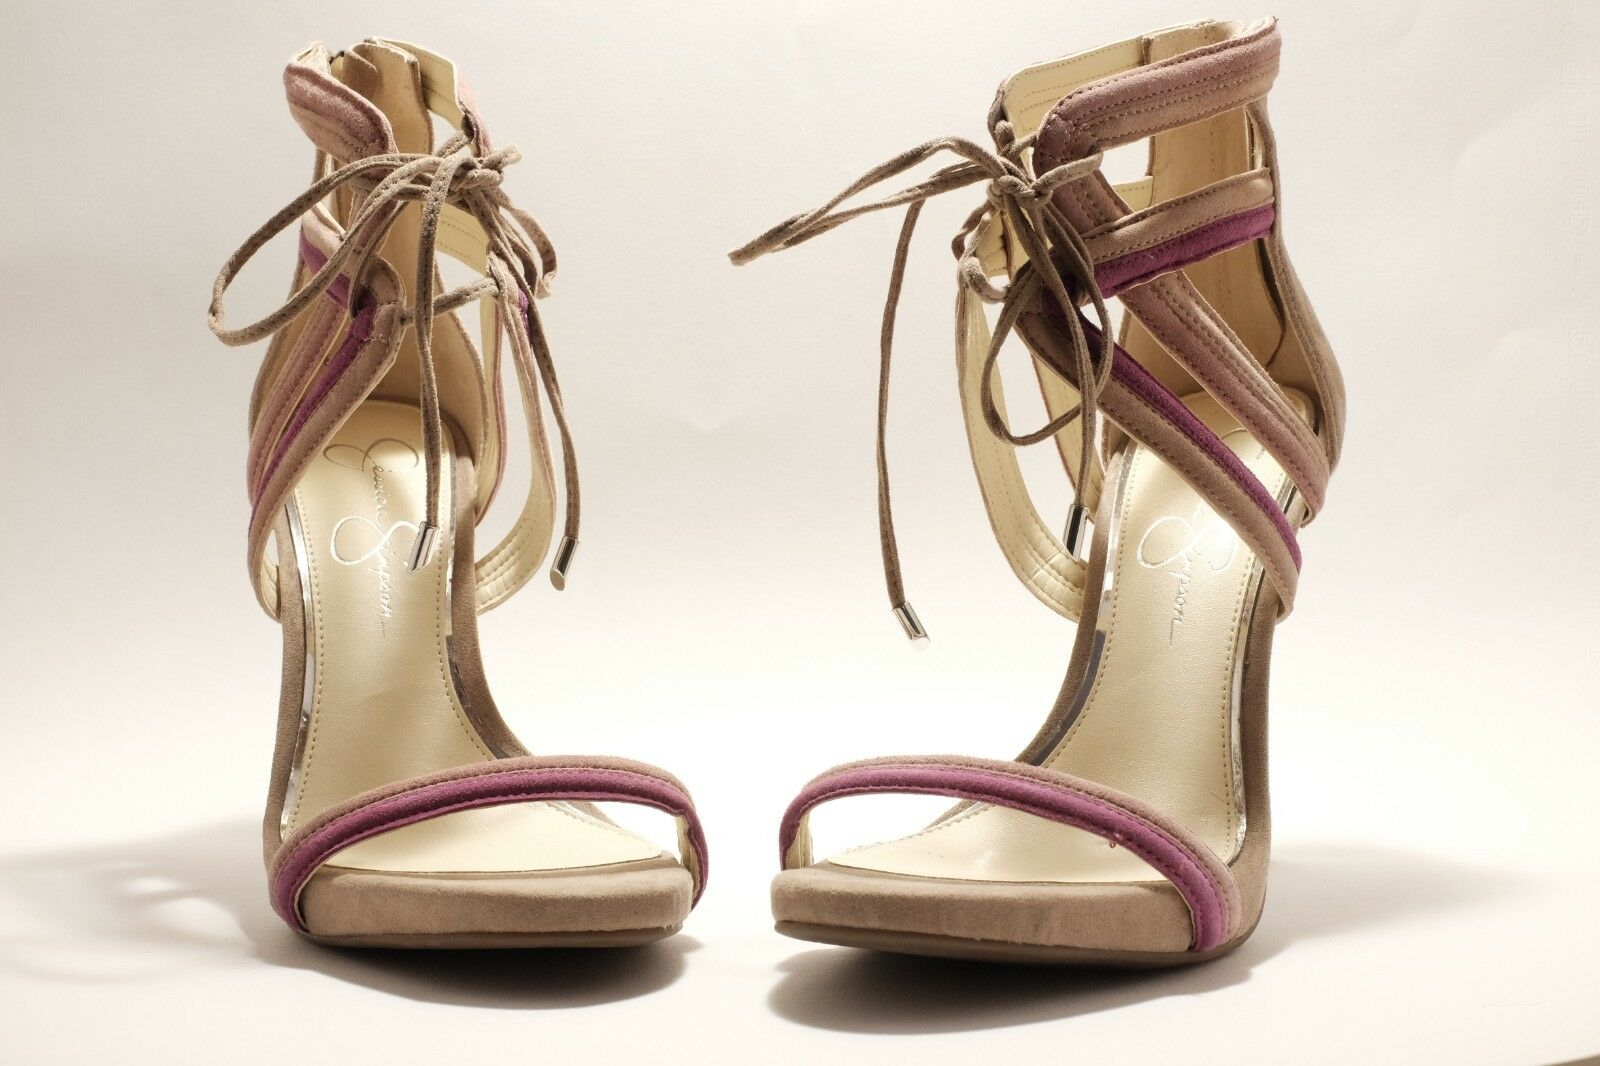 Jessica Simpson Nude Purple Ankle Strap Heels Size 9